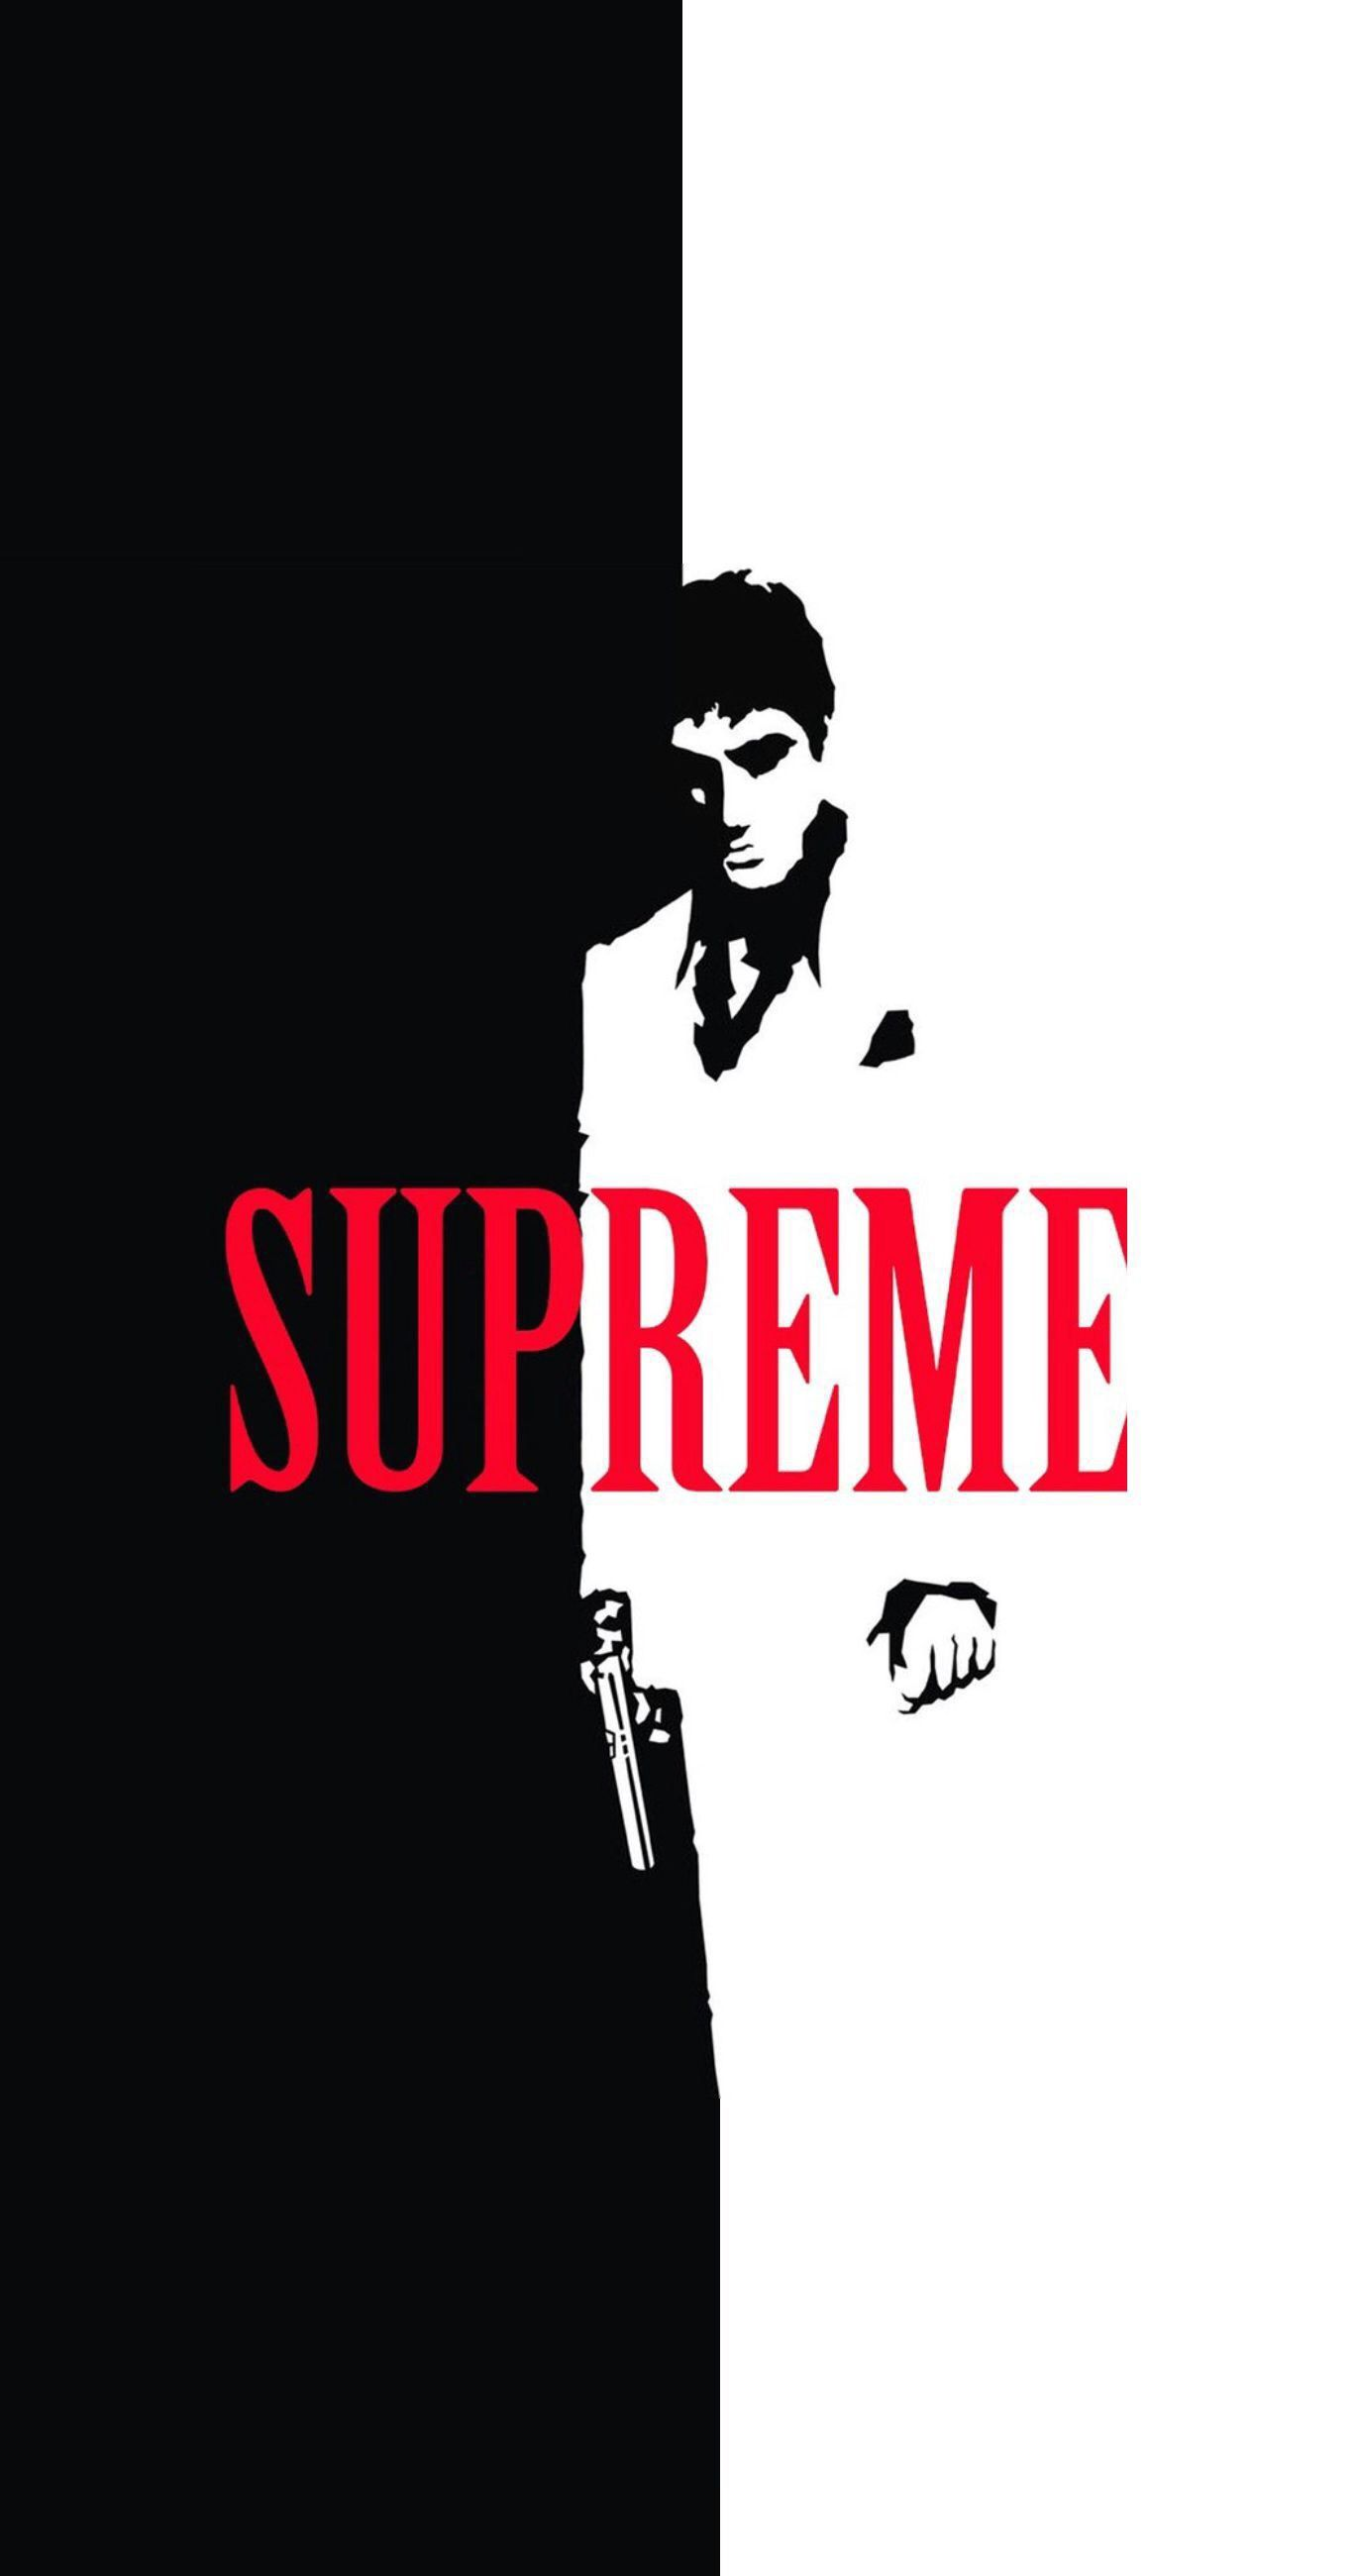 Scarface X Supreme Split Iphone Wallpaper Supreme Iphone Wallpaper Supreme Wallpaper Bape Wallpaper Iphone